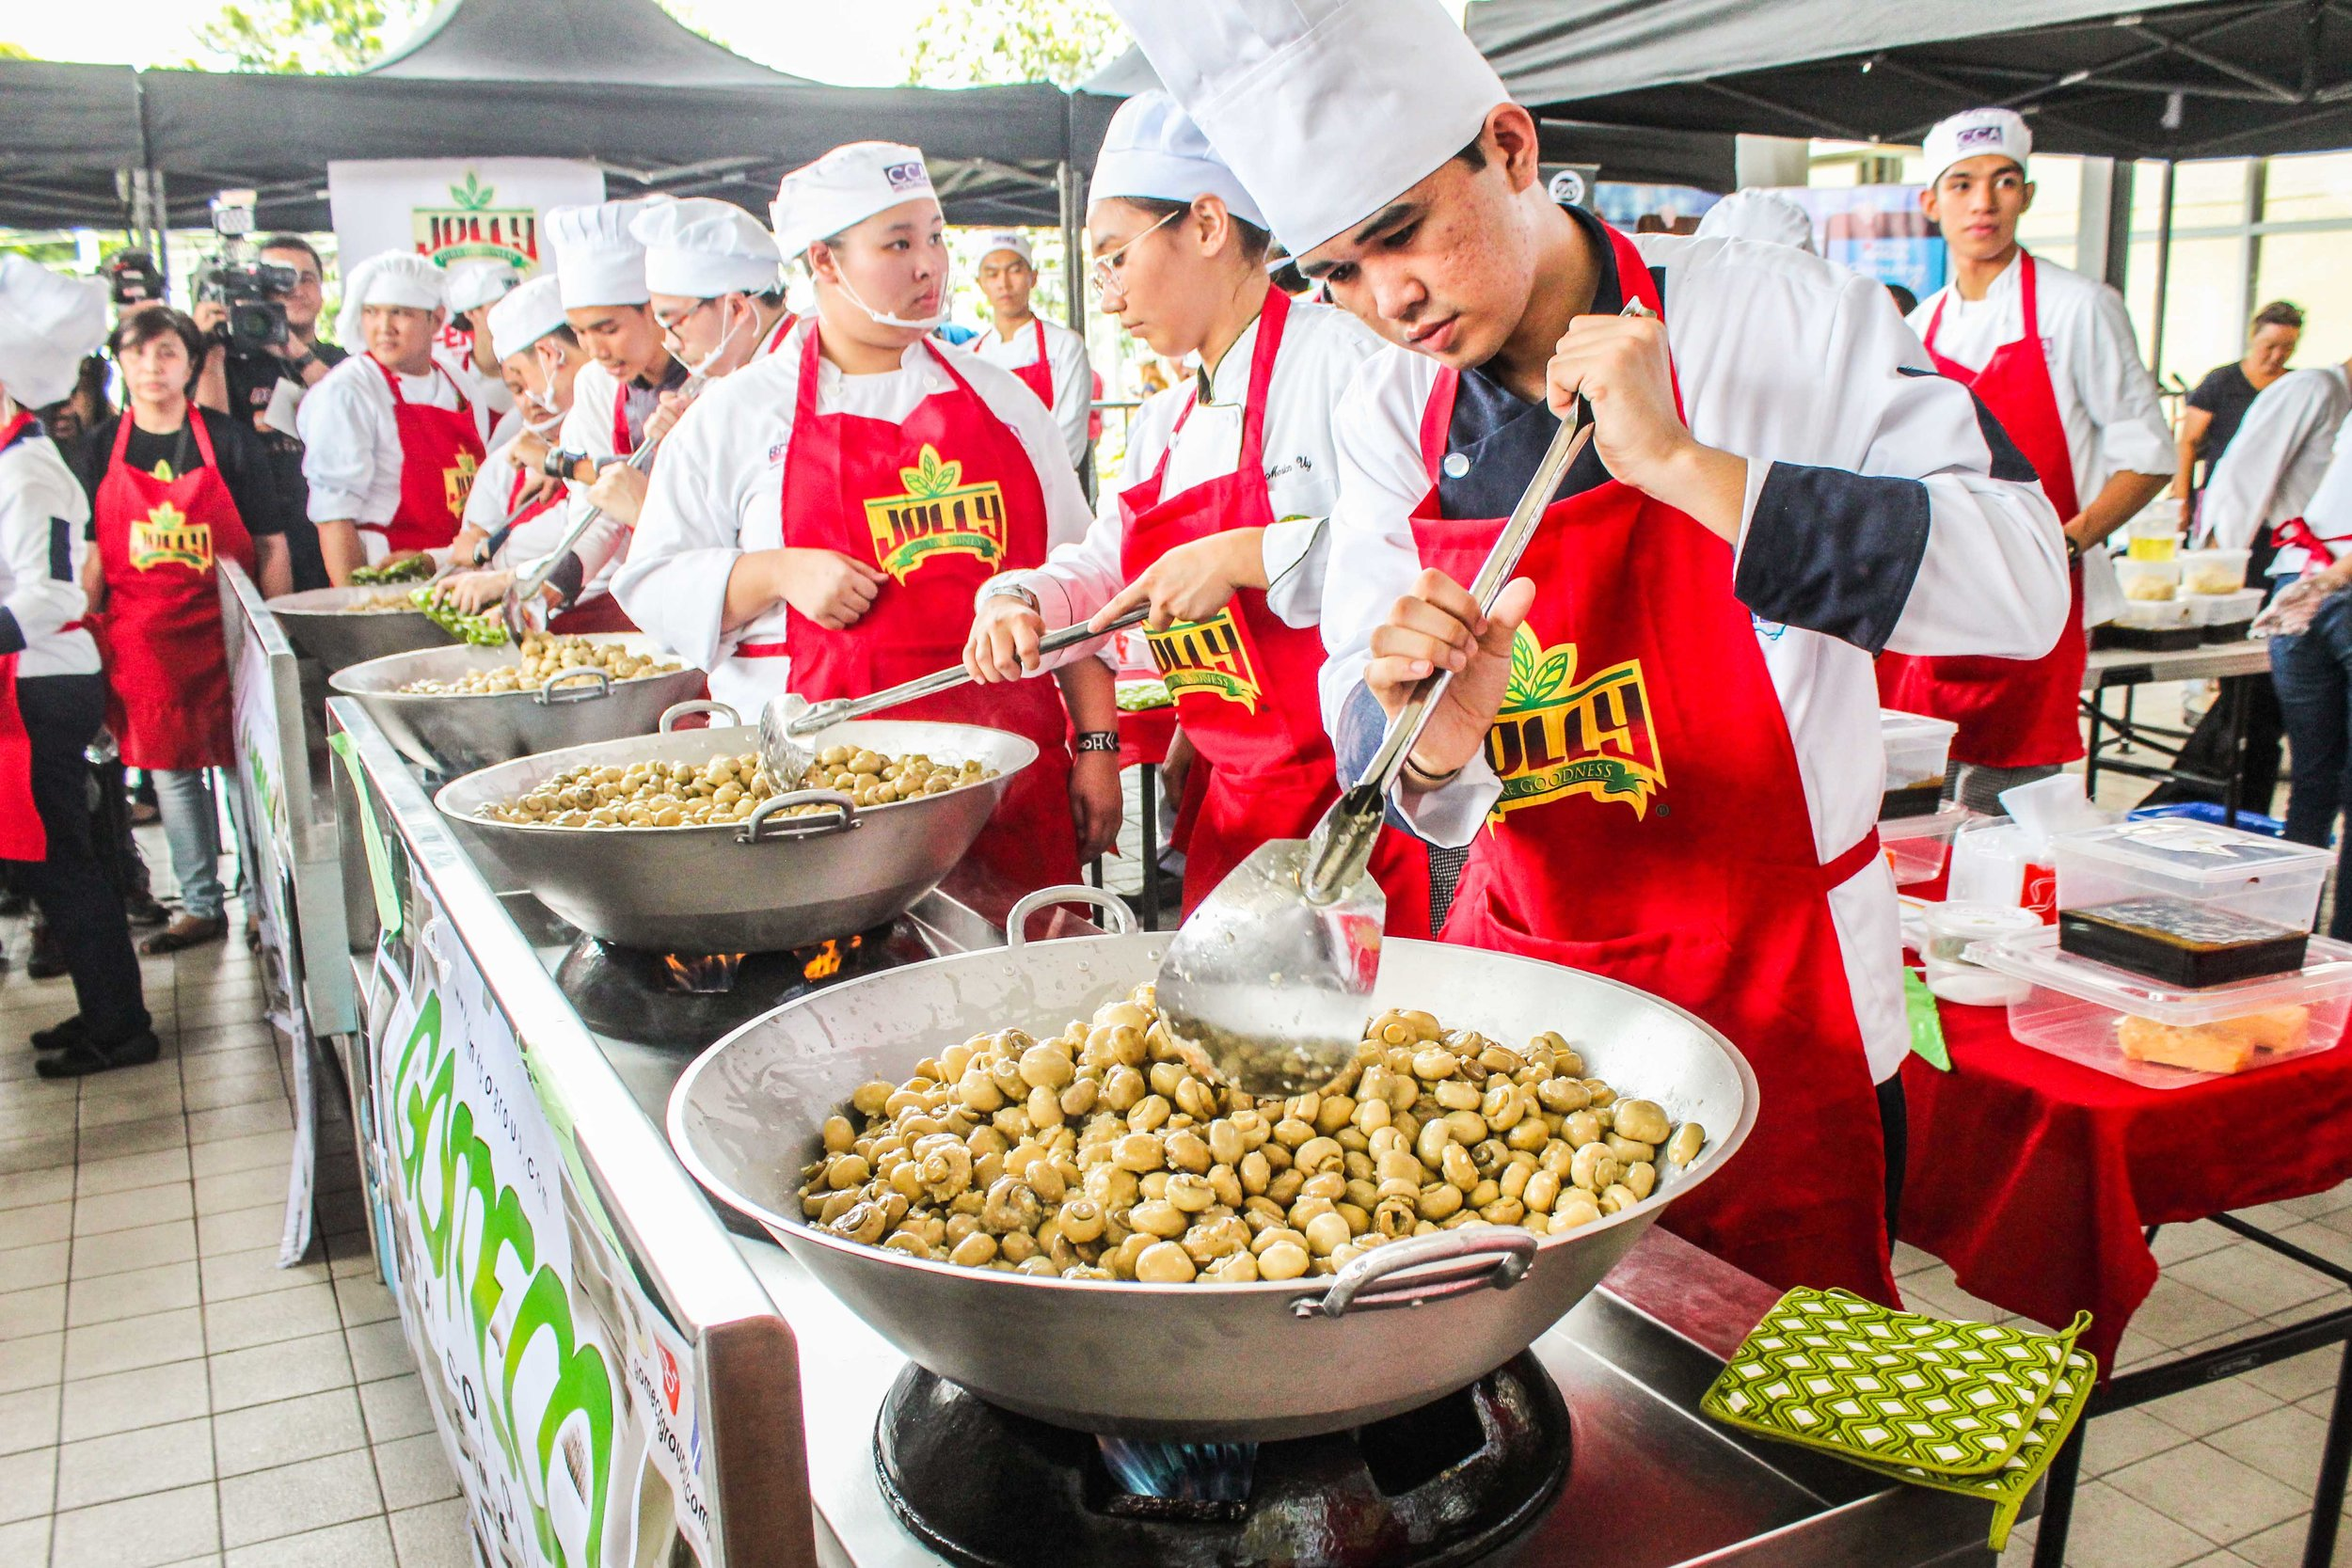 Cookign-Stations.-Students-from-CCA-cooking-over-300-kg-of-mushroom-to-make-the-world-record..jpg